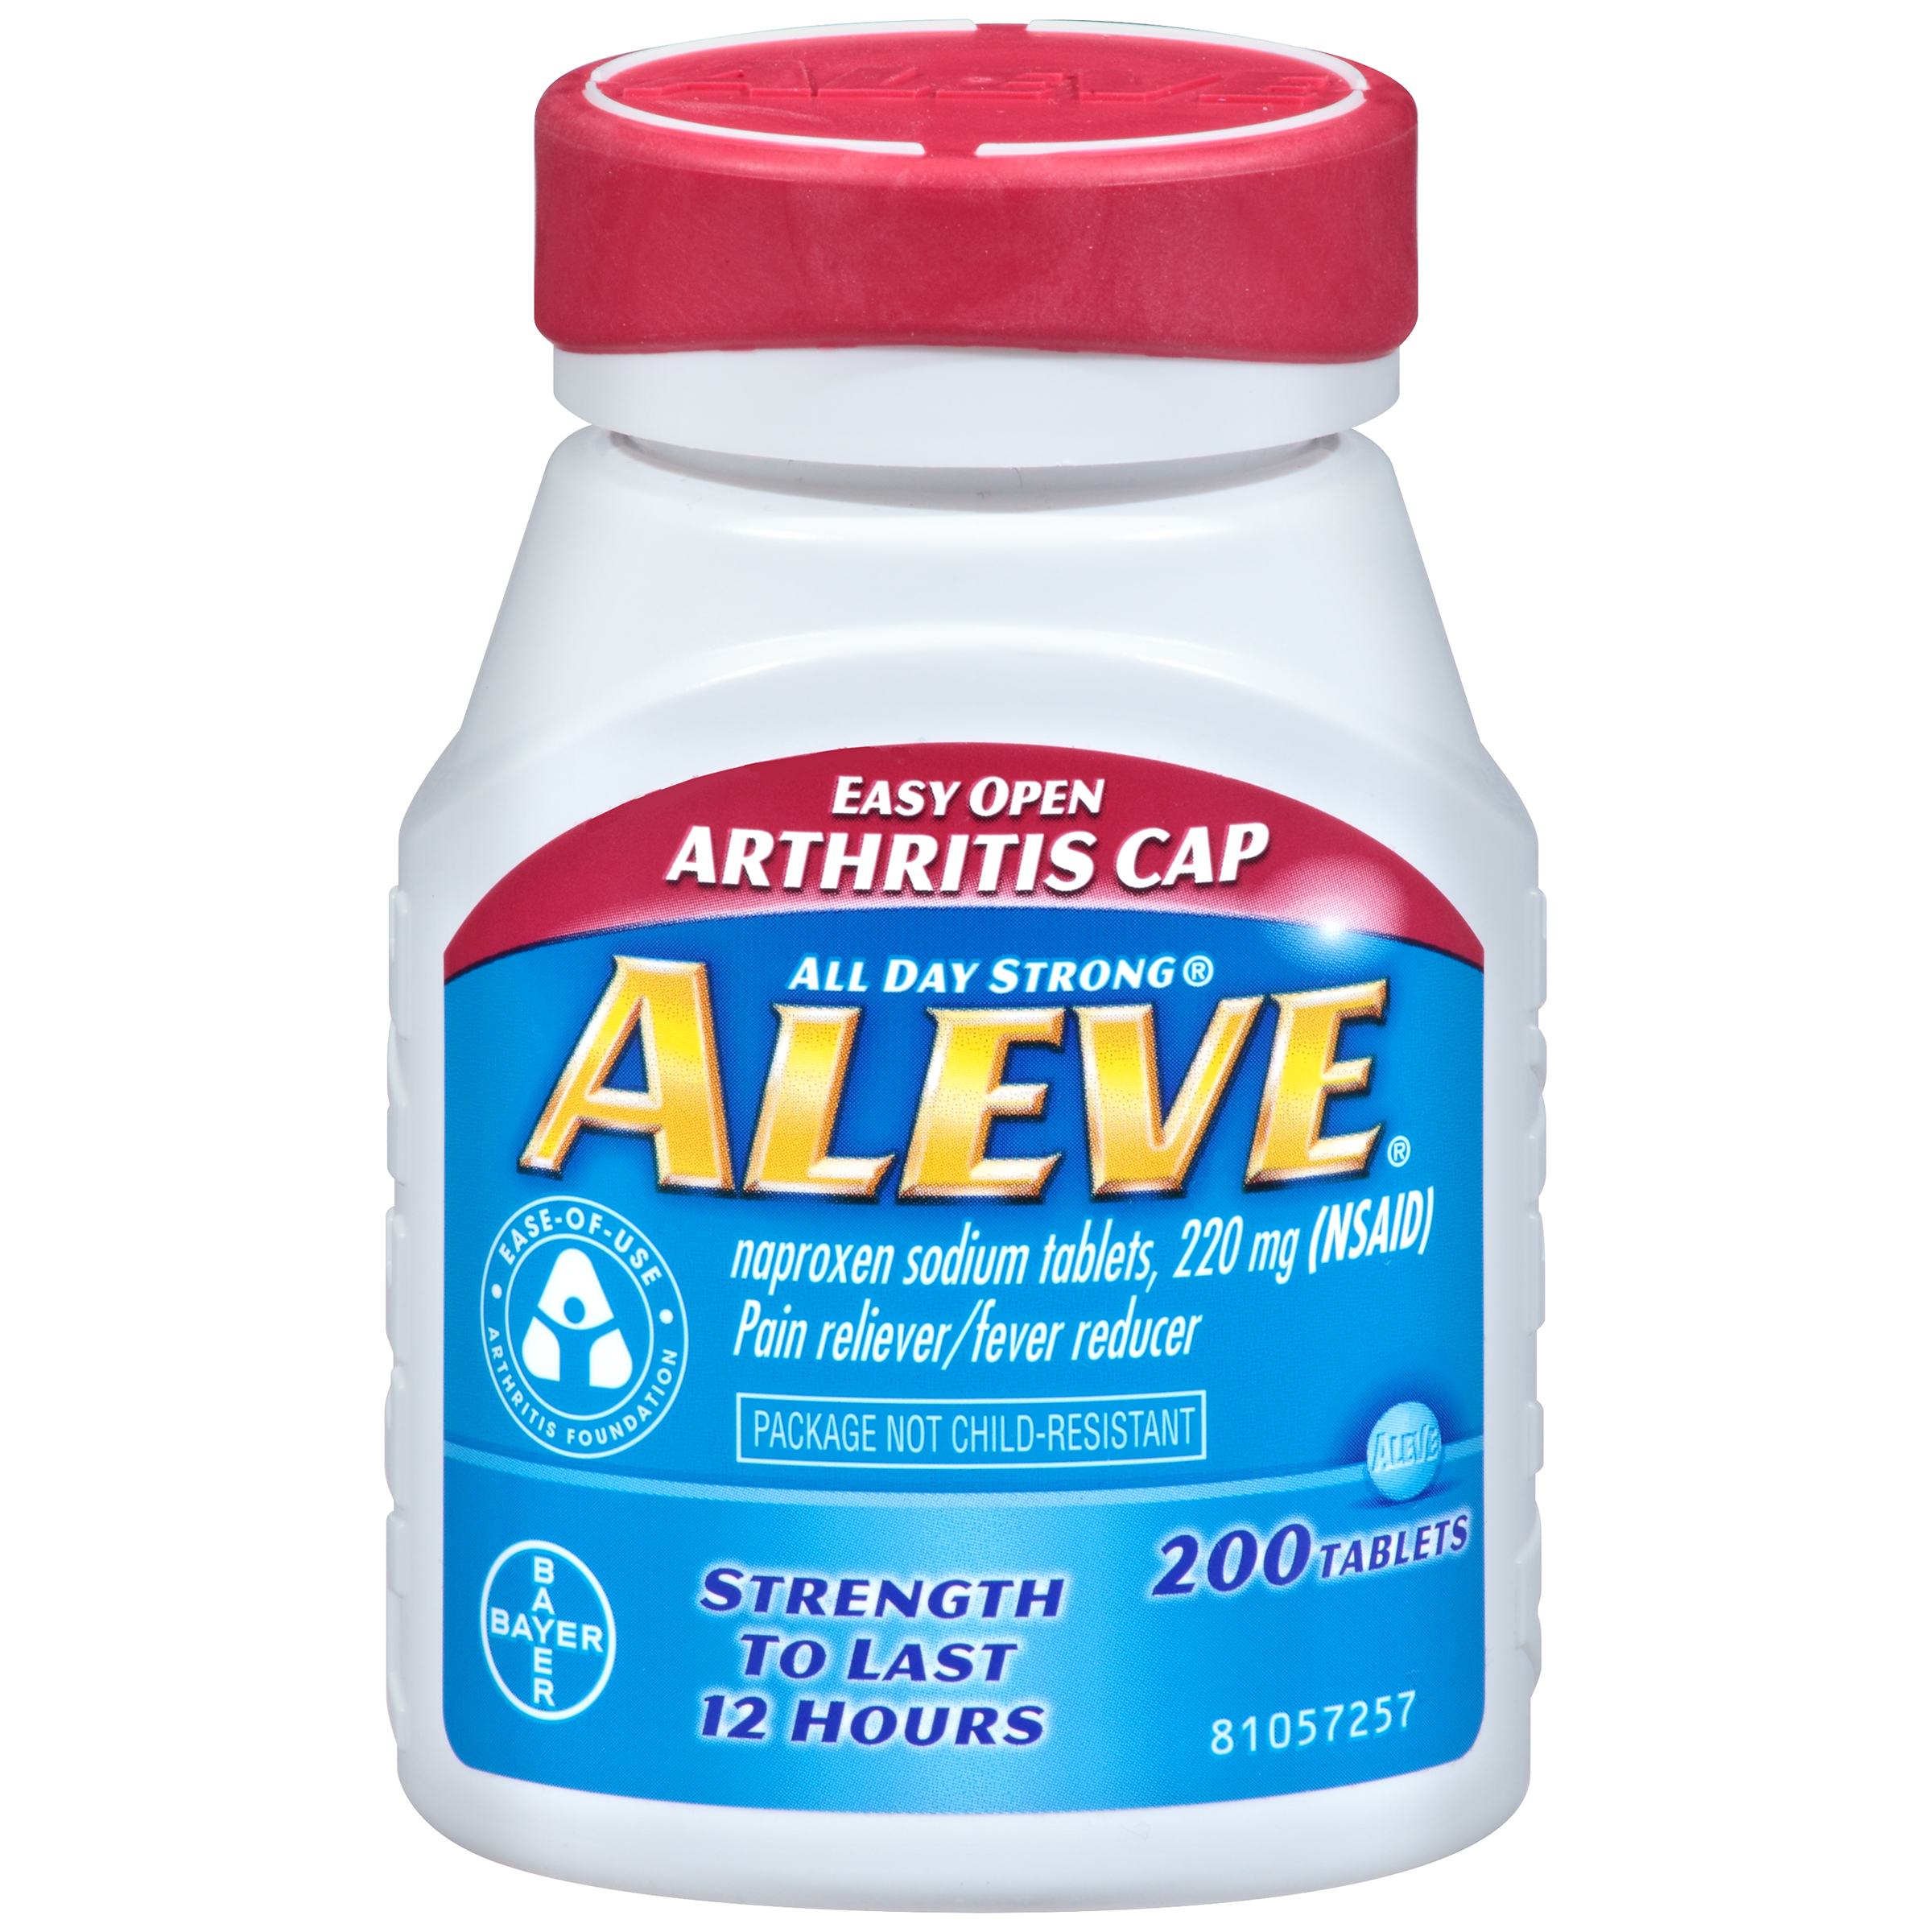 Aleve Easy Open Arthritis Cap Pain Relieverfever Reducer Naproxen